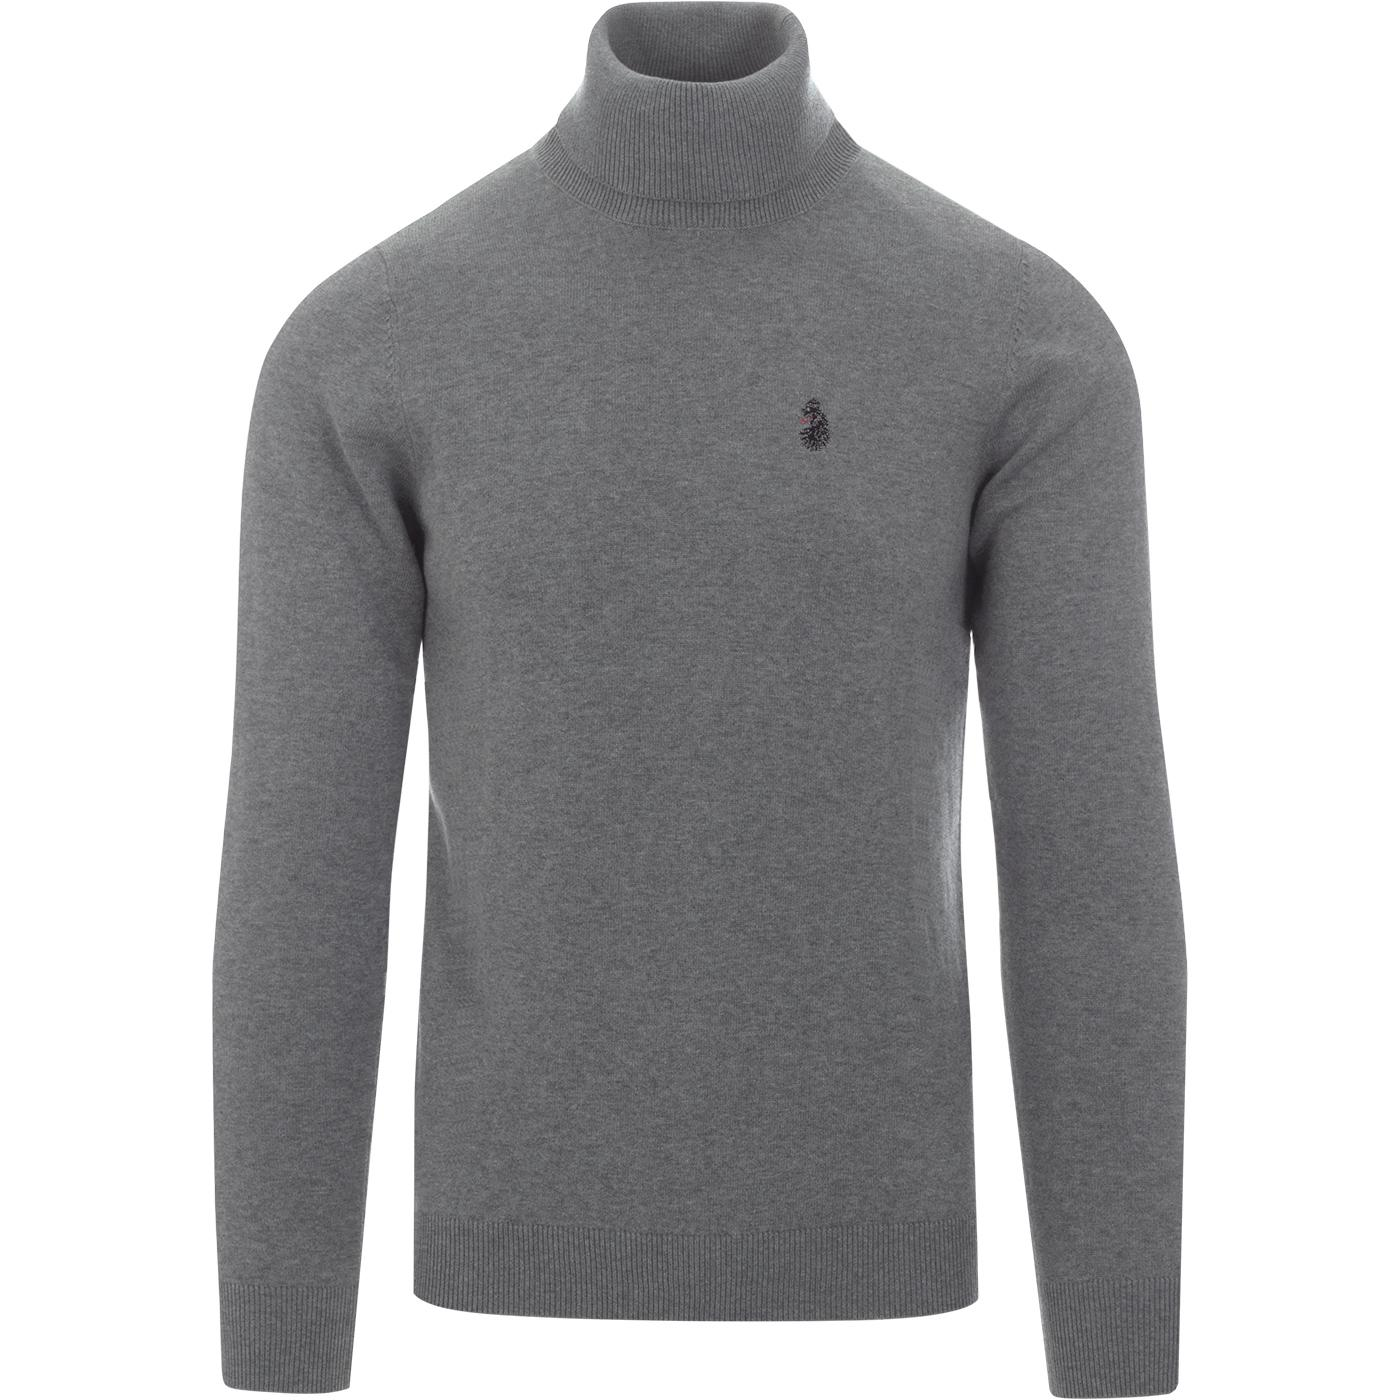 Polesium LUKE 60s Mod Knitted Roll Neck Jumper MG